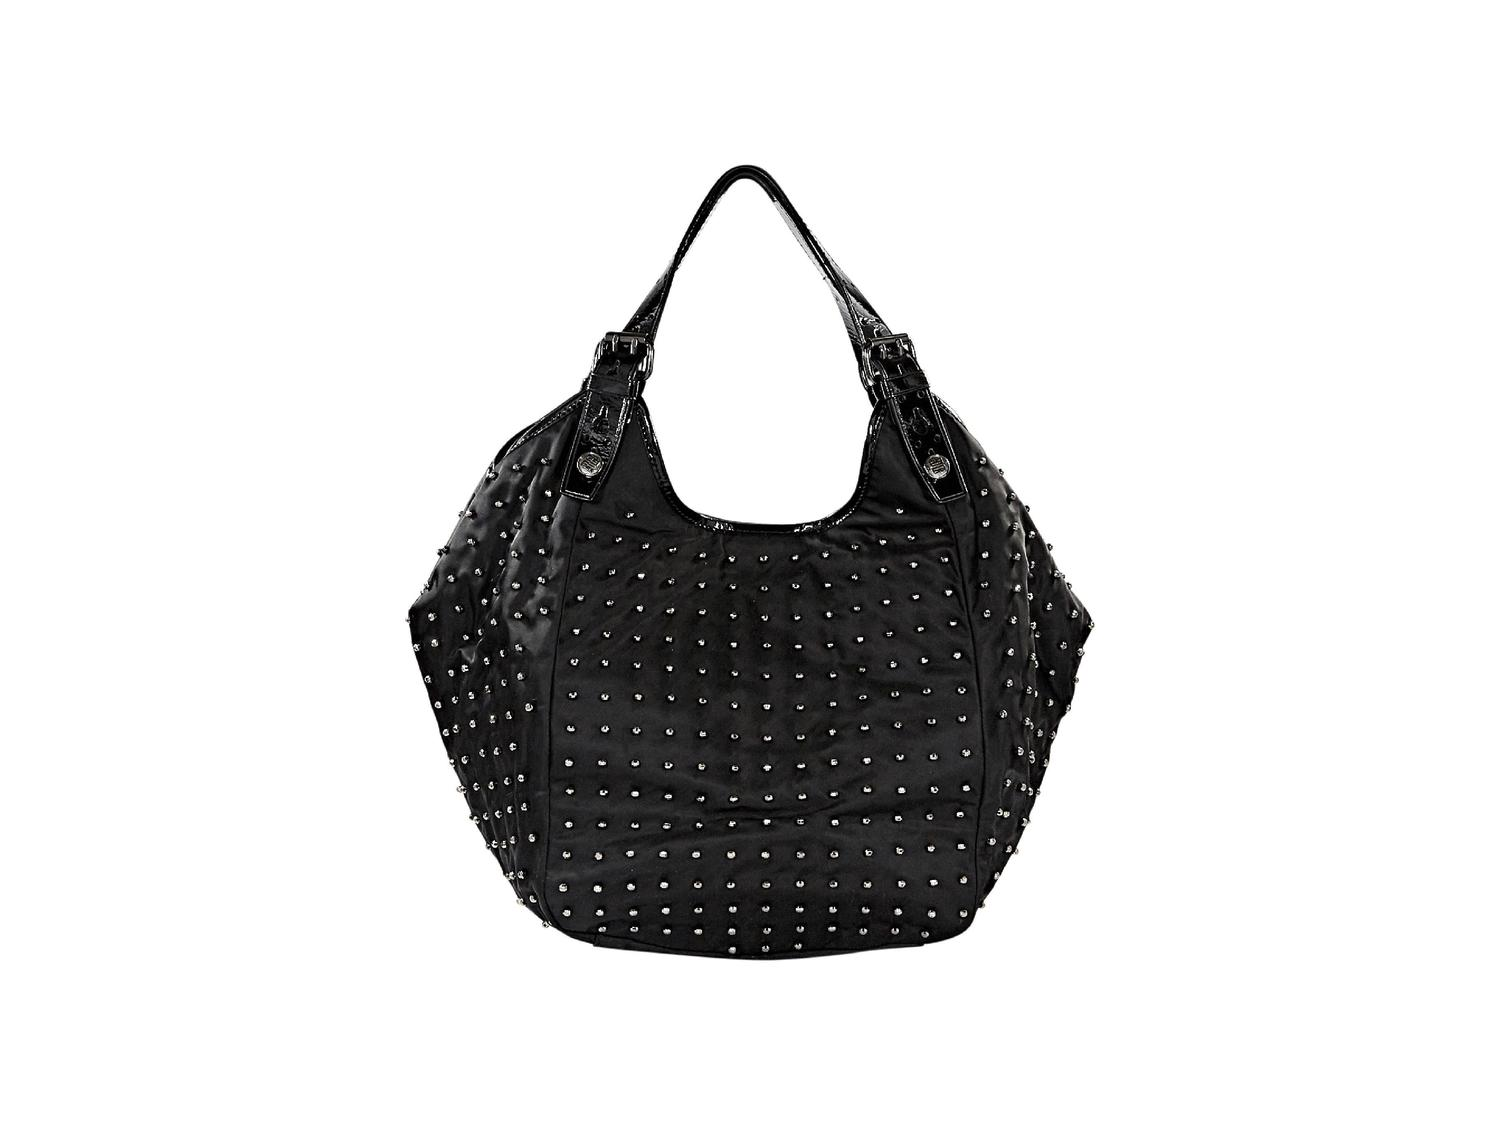 Givenchy Black Nylon Beaded  New Sacca  Hobo Bag at 1stdibs 1c6d1944935d2